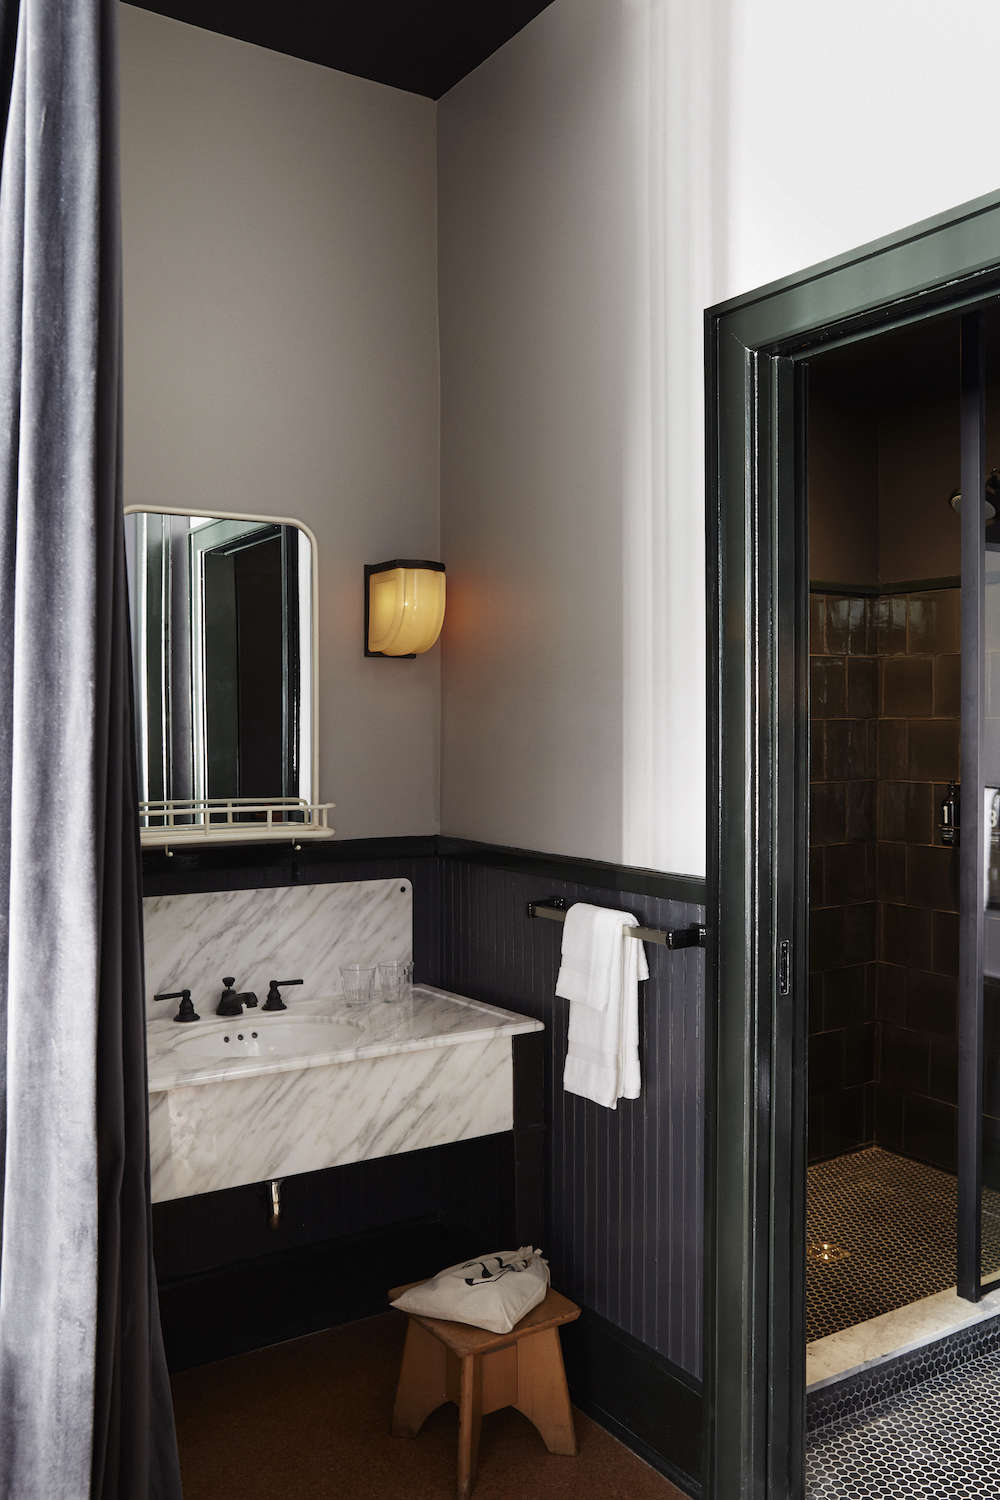 The washroom is hidden by a purple velvet curtain and features custom fixtures and lighting by Roman & Williams. The bathrooms are stocked with soap fromPearl+ and toiletries by Rudy's Barbershop.